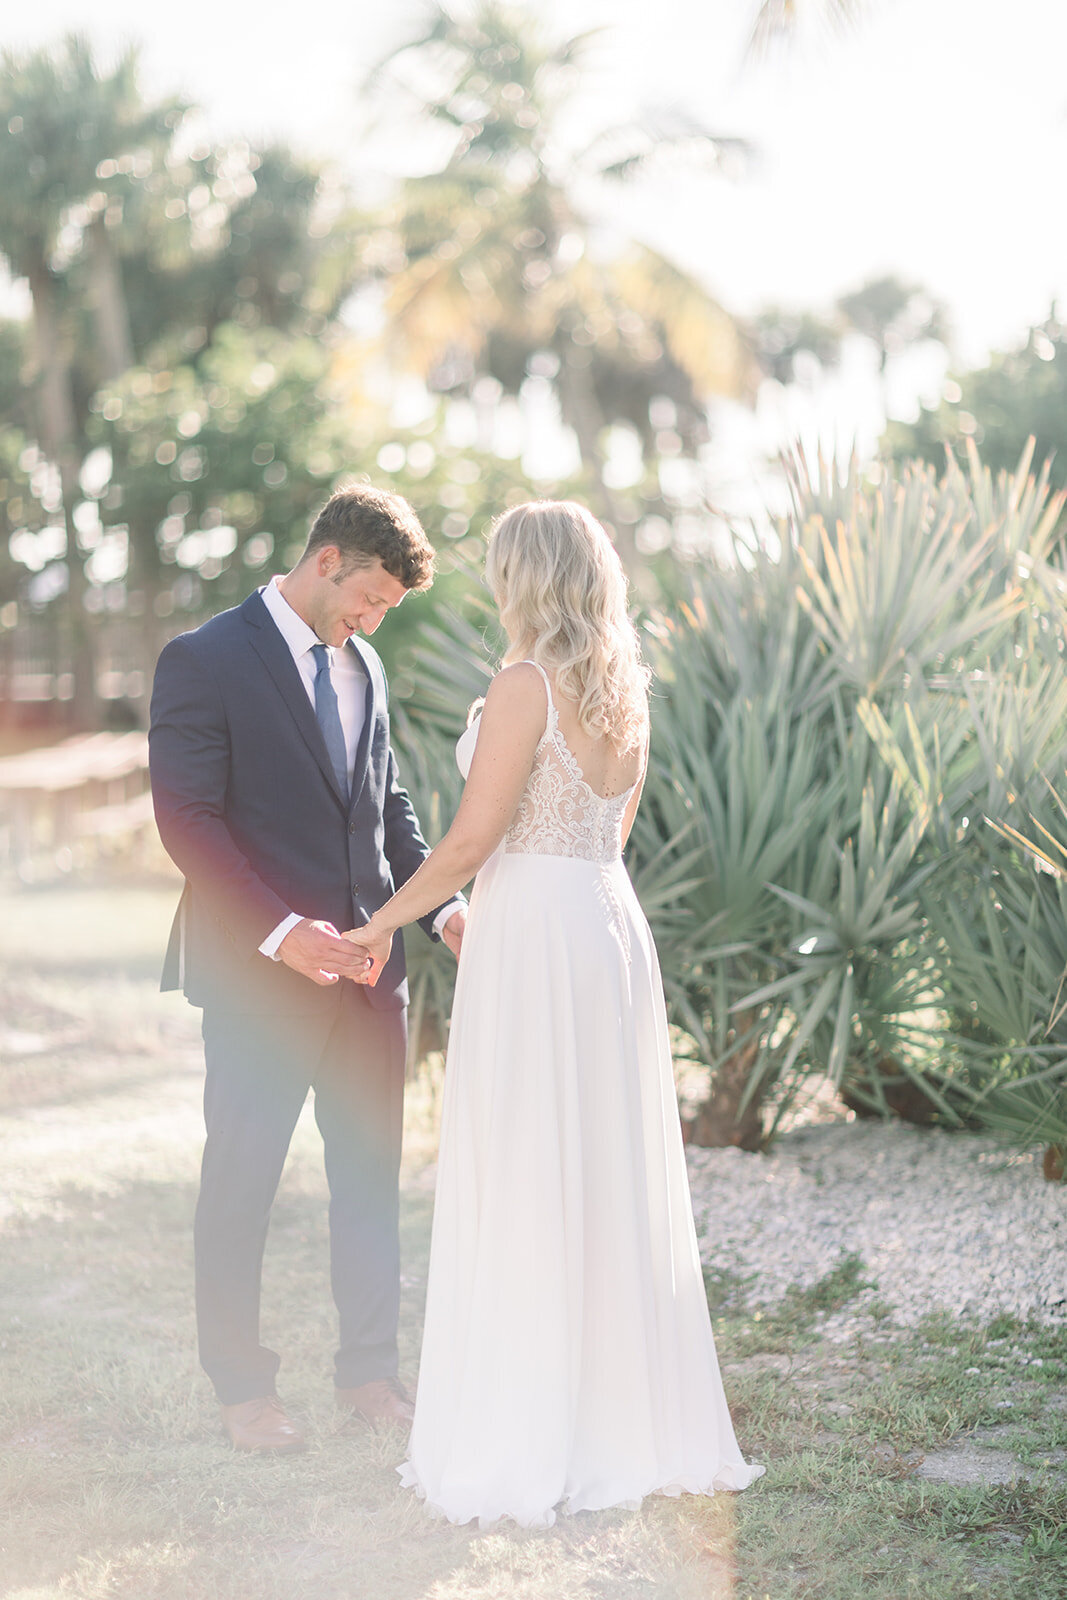 alex-mike-bowditch-beach-fort-myers-wedding-photos-1021